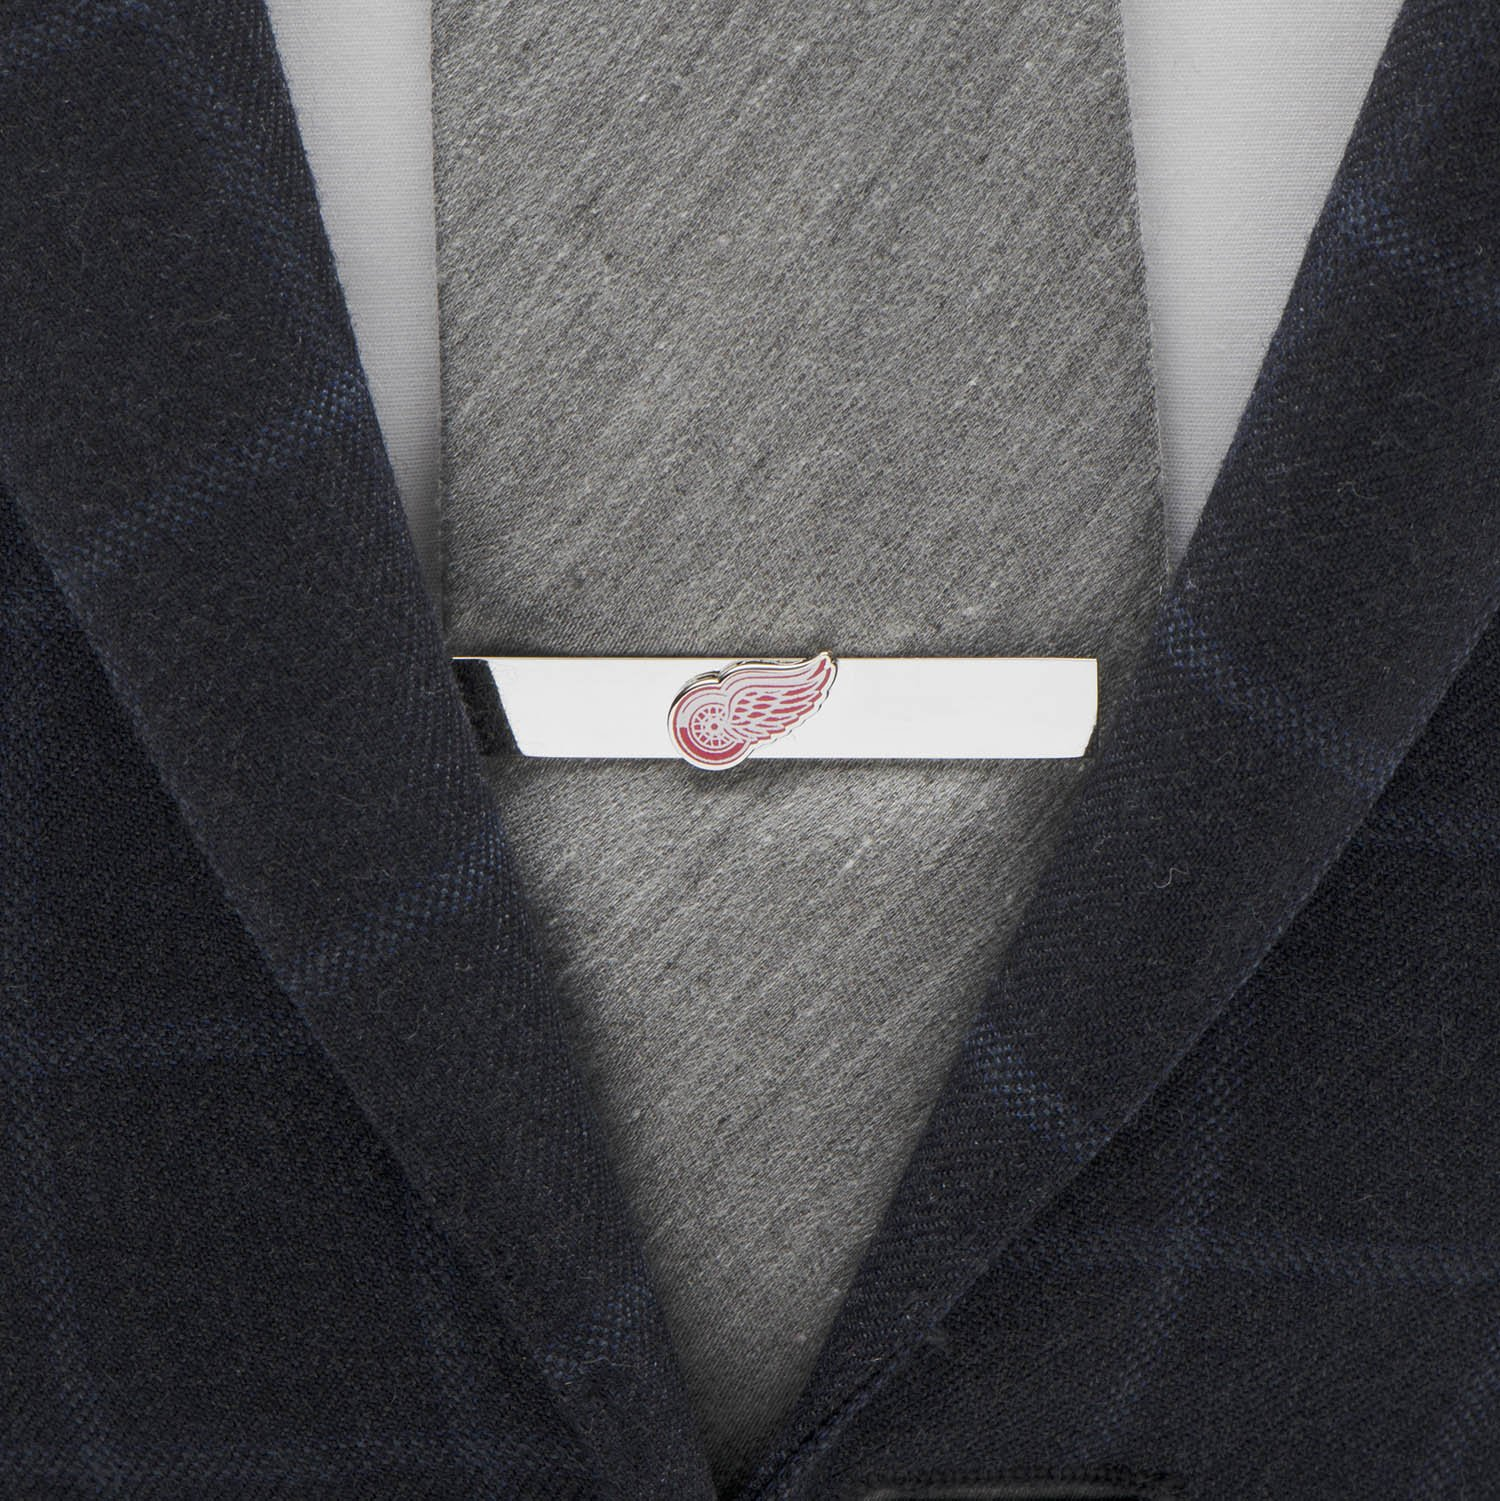 NHL Detroit Red Wings Tie Bar, Officially Licensed by Cufflinks (Image #2)